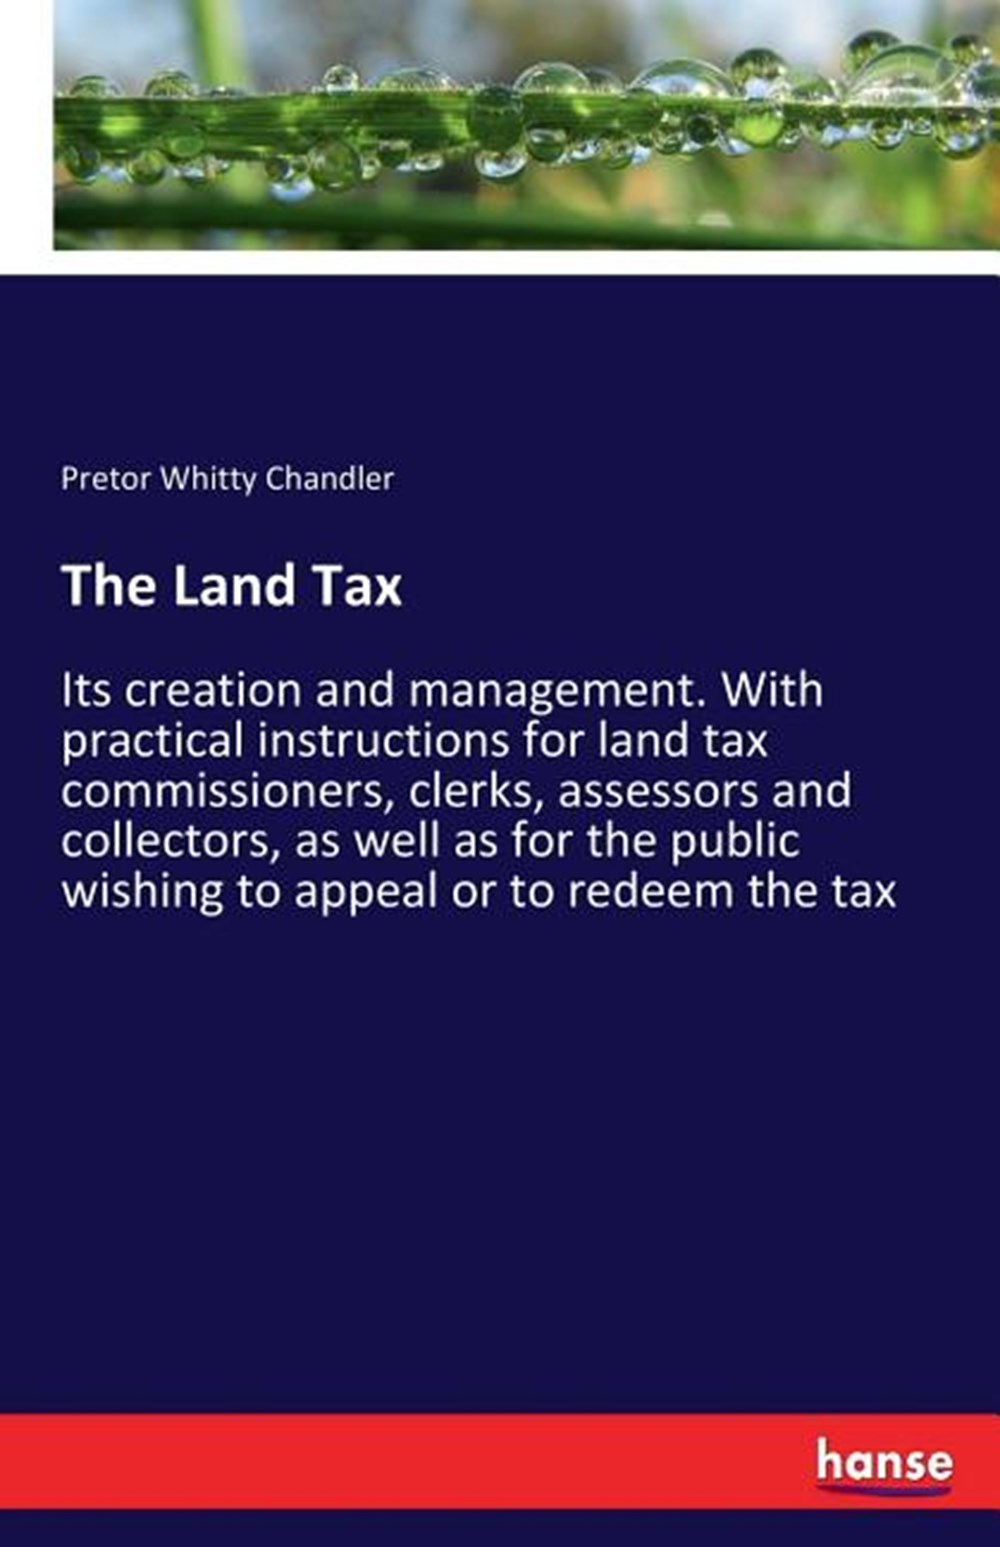 Land Tax Its creation and management. With practical instructions for land tax commissioners, clerks